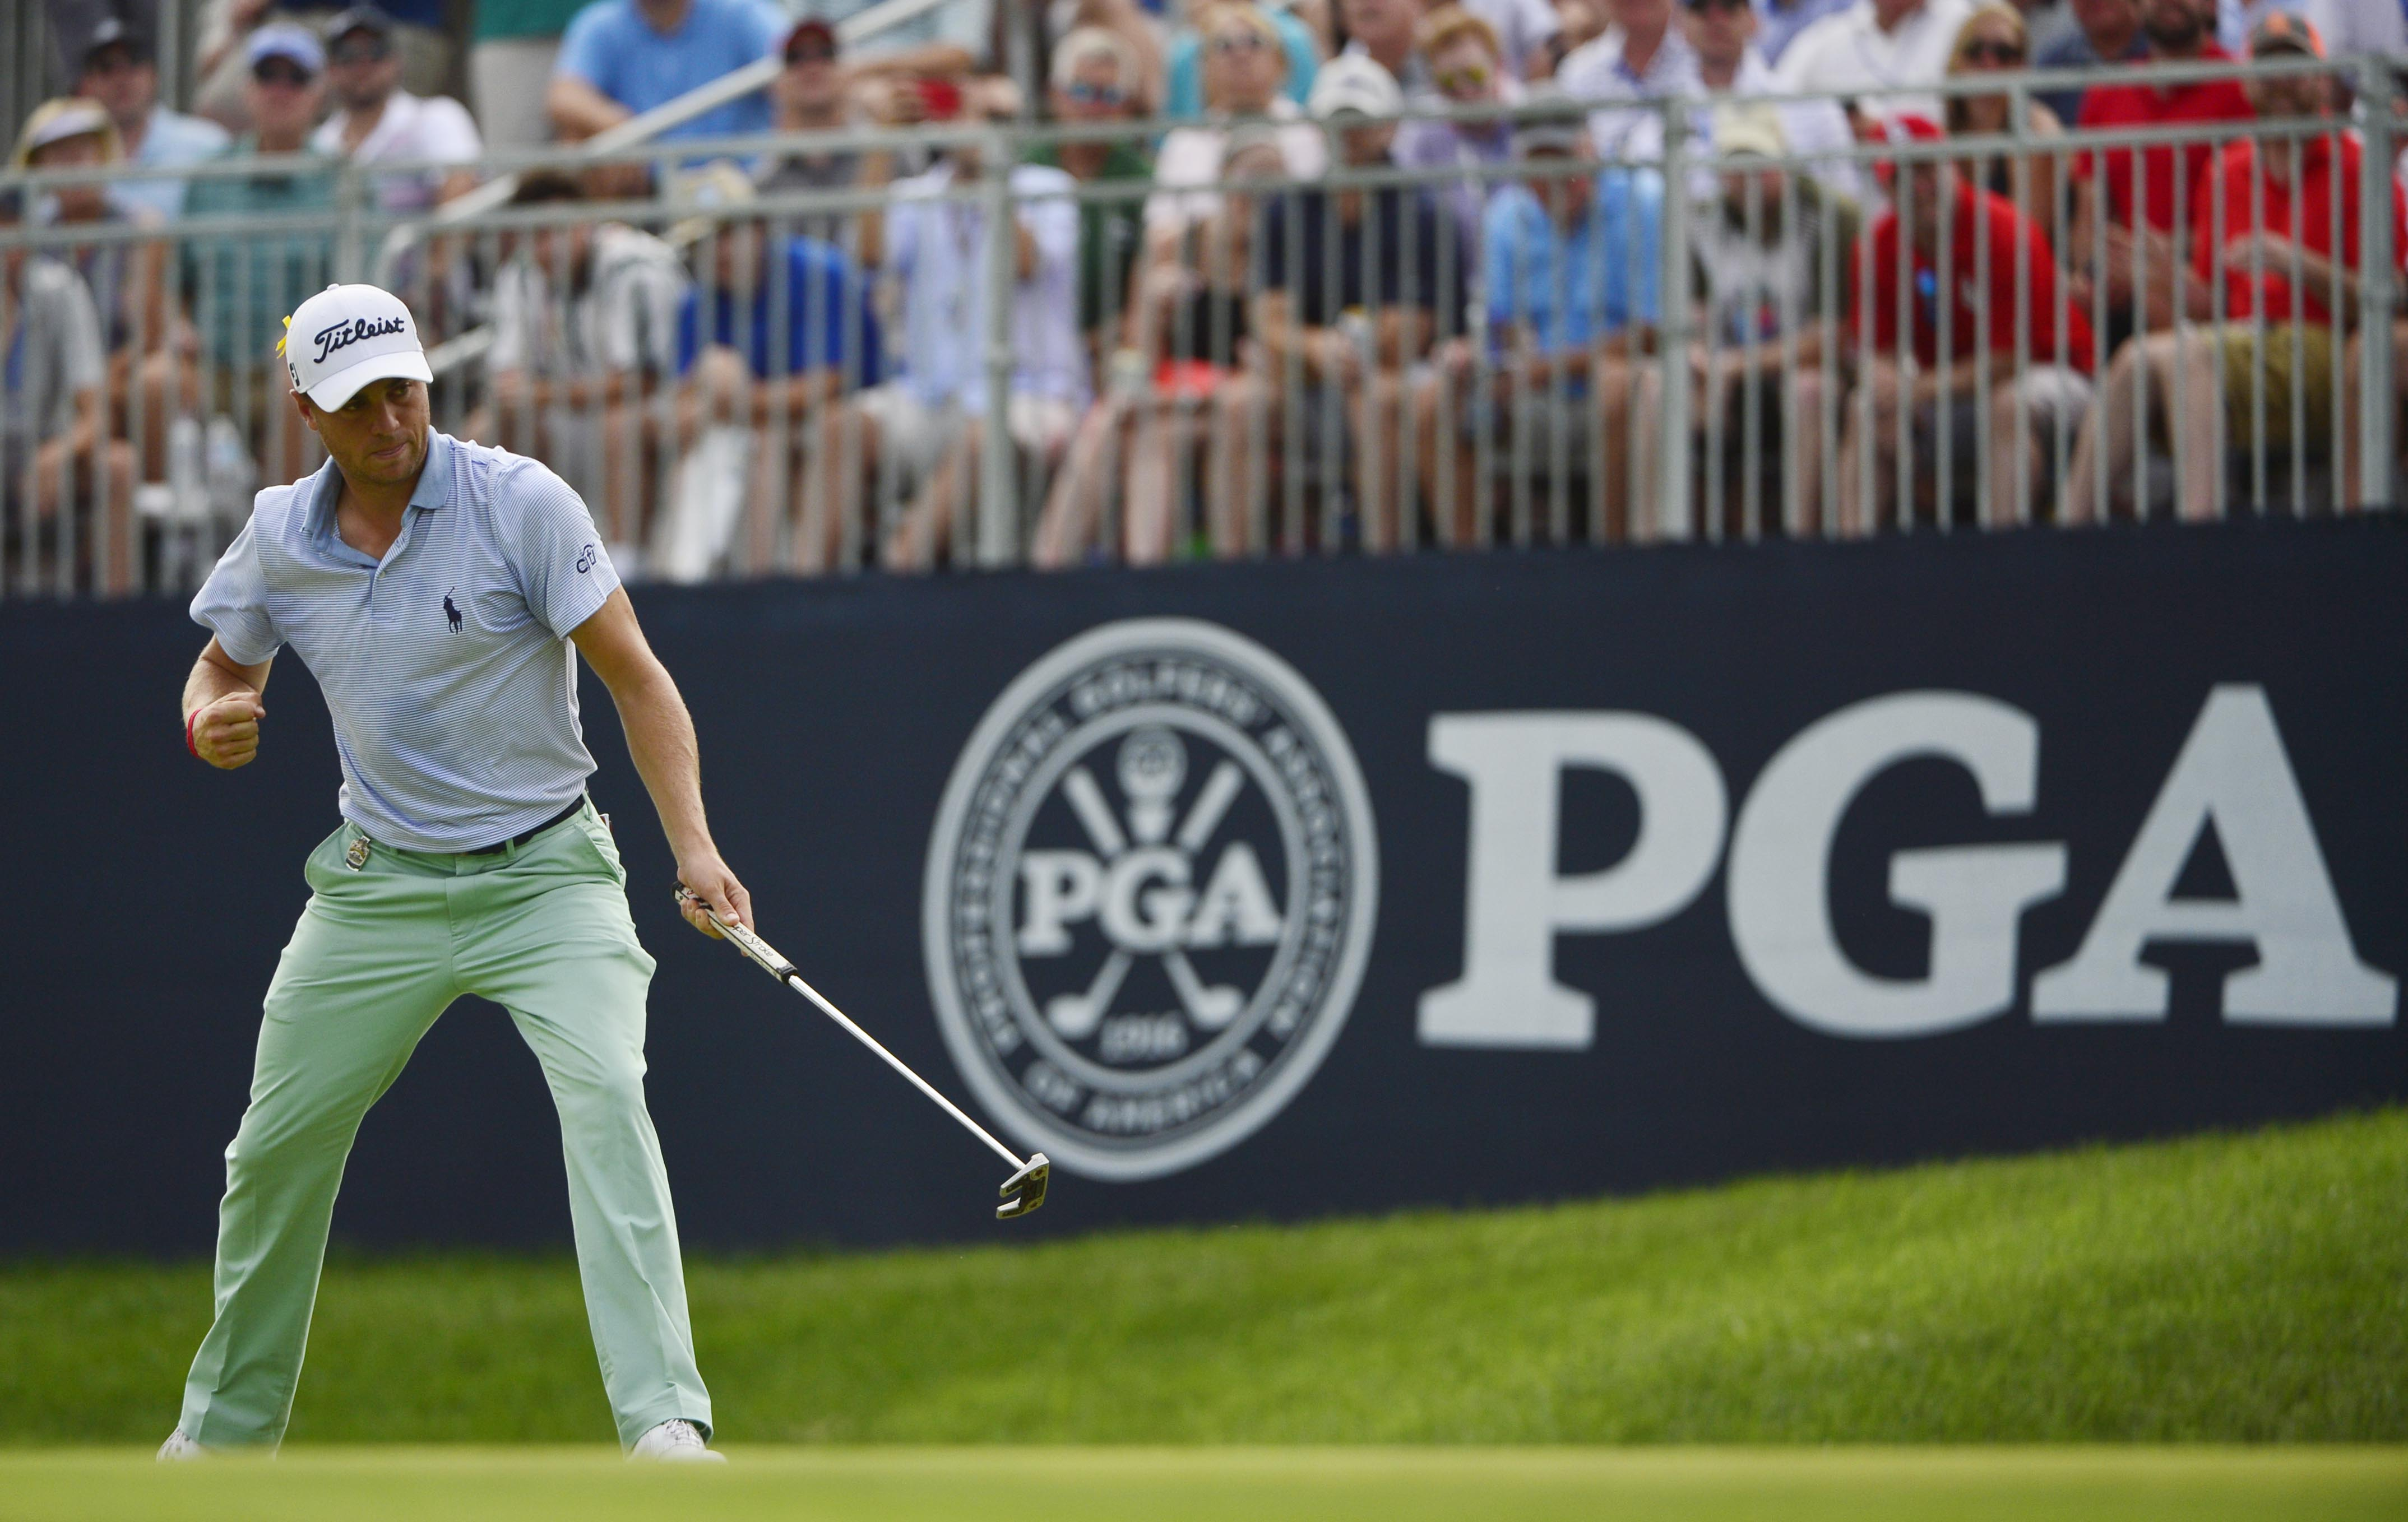 Aug 12, 2018; Saint Louis, MO, USA; Justin Thomas pumps his fist after making a birdie putt on the 10th green during the final round of the PGA Championship golf tournament at Bellerive Country Club. Mandatory Credit: Jeff Curry-USA TODAY Sports